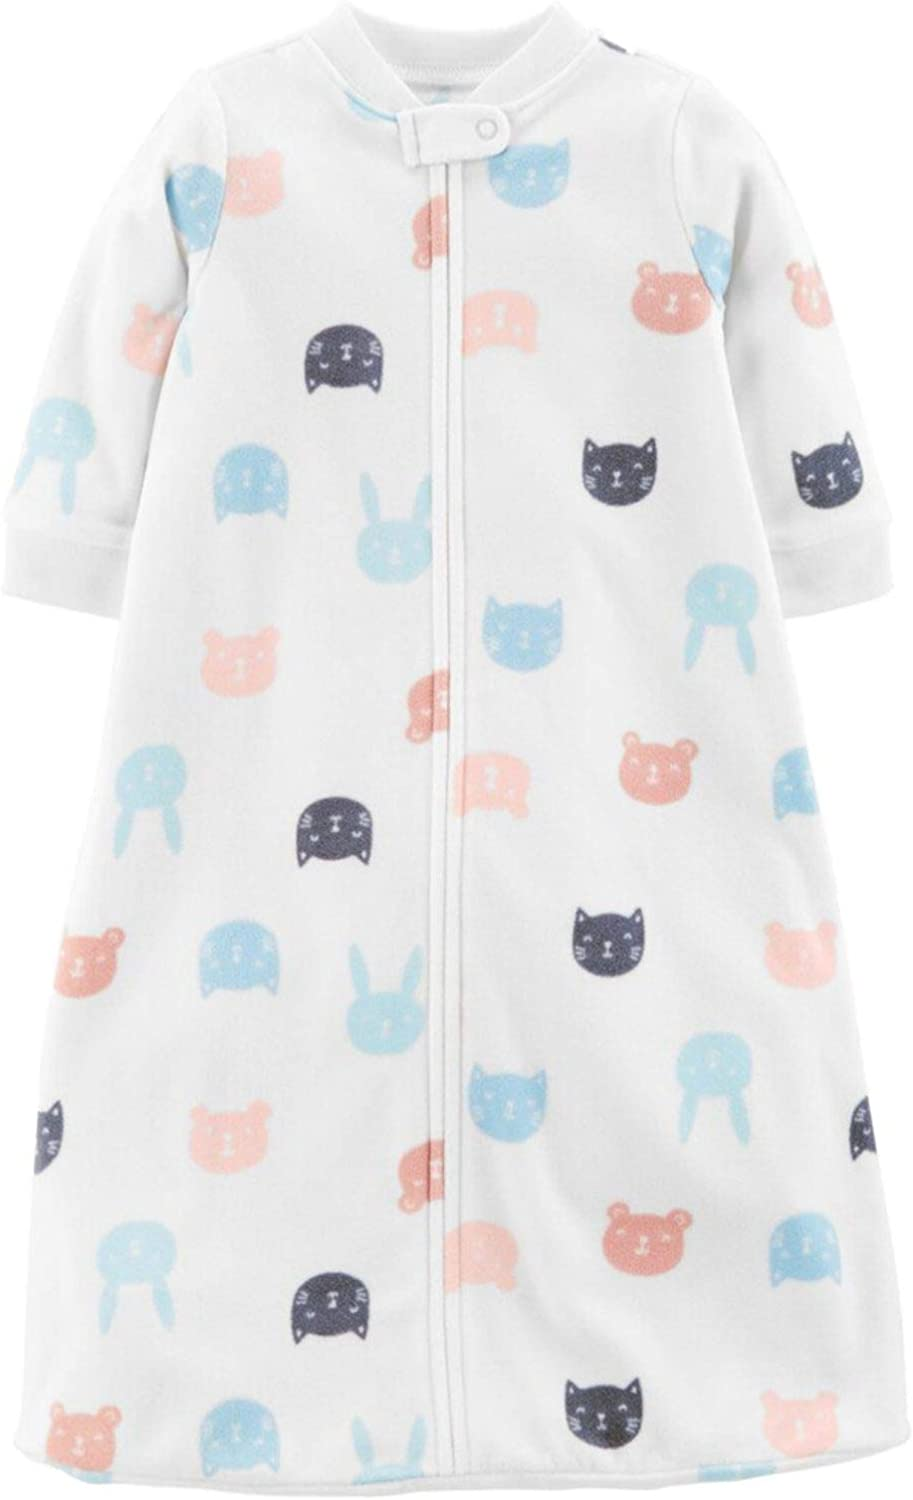 White Medium Carters Baby Boys Elephant Sleep Bag New in Original Package.